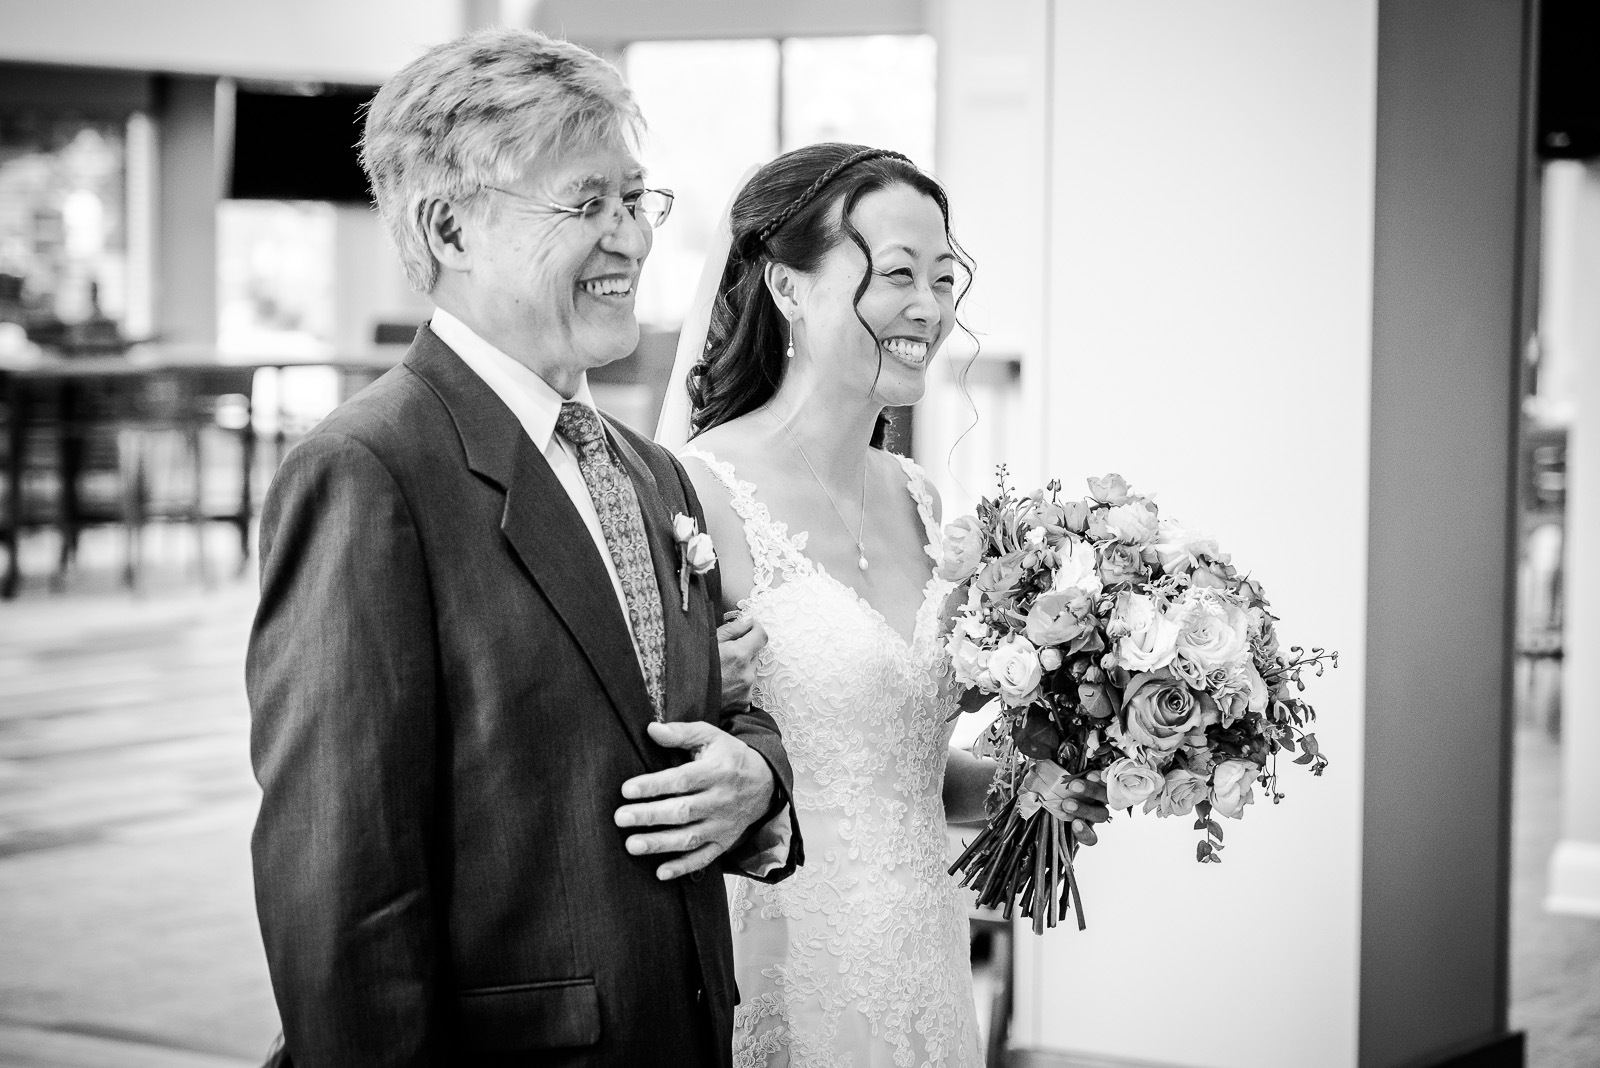 Eric_and_Christy_Photography_Blog_Wedding_Anne_Michael-46